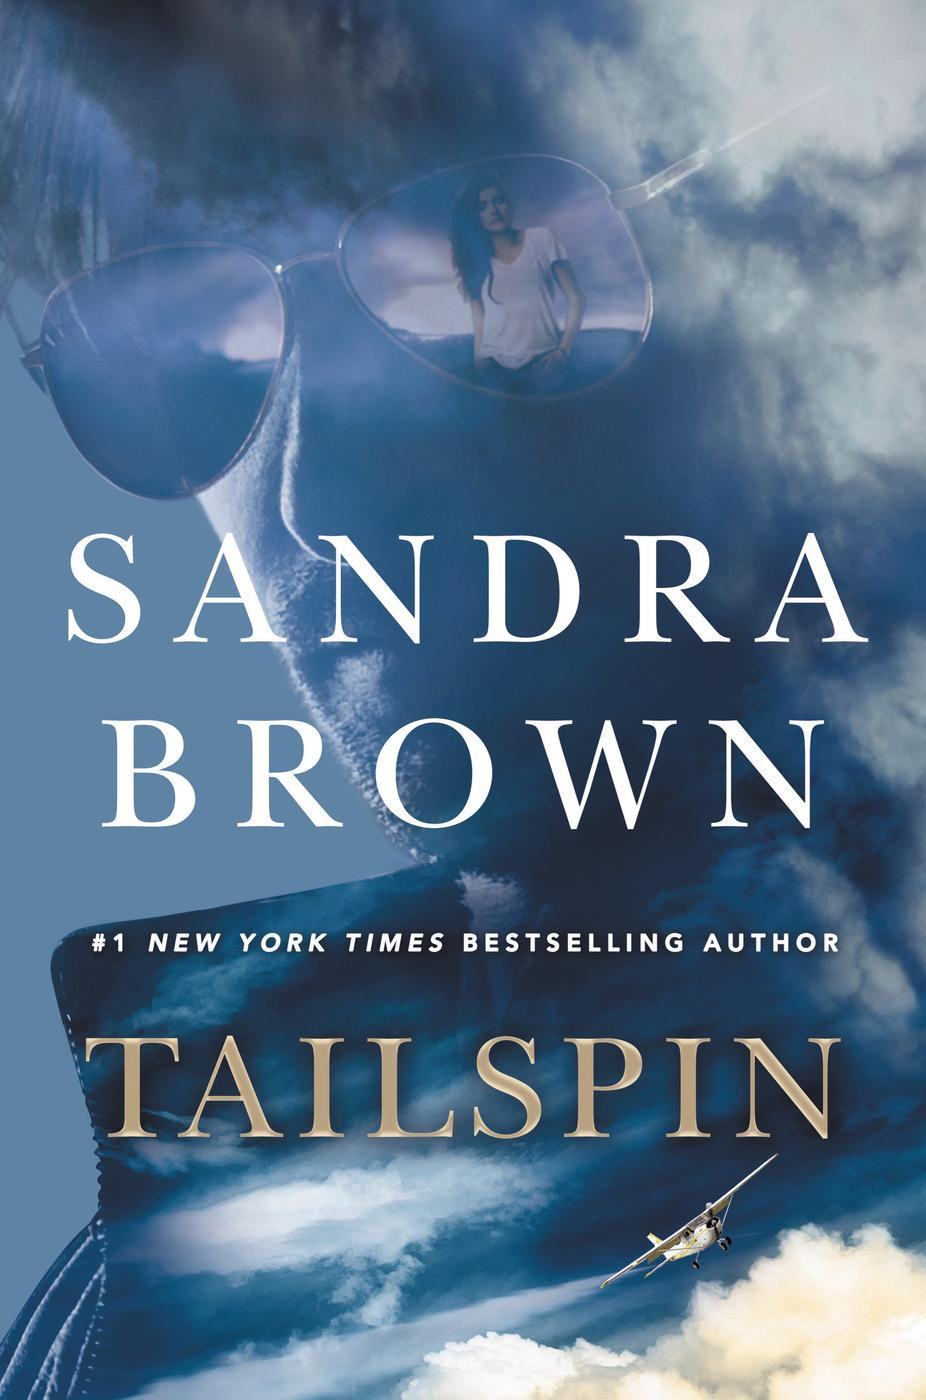 Tailspin - Sandra Brown [kindle] [mobi]